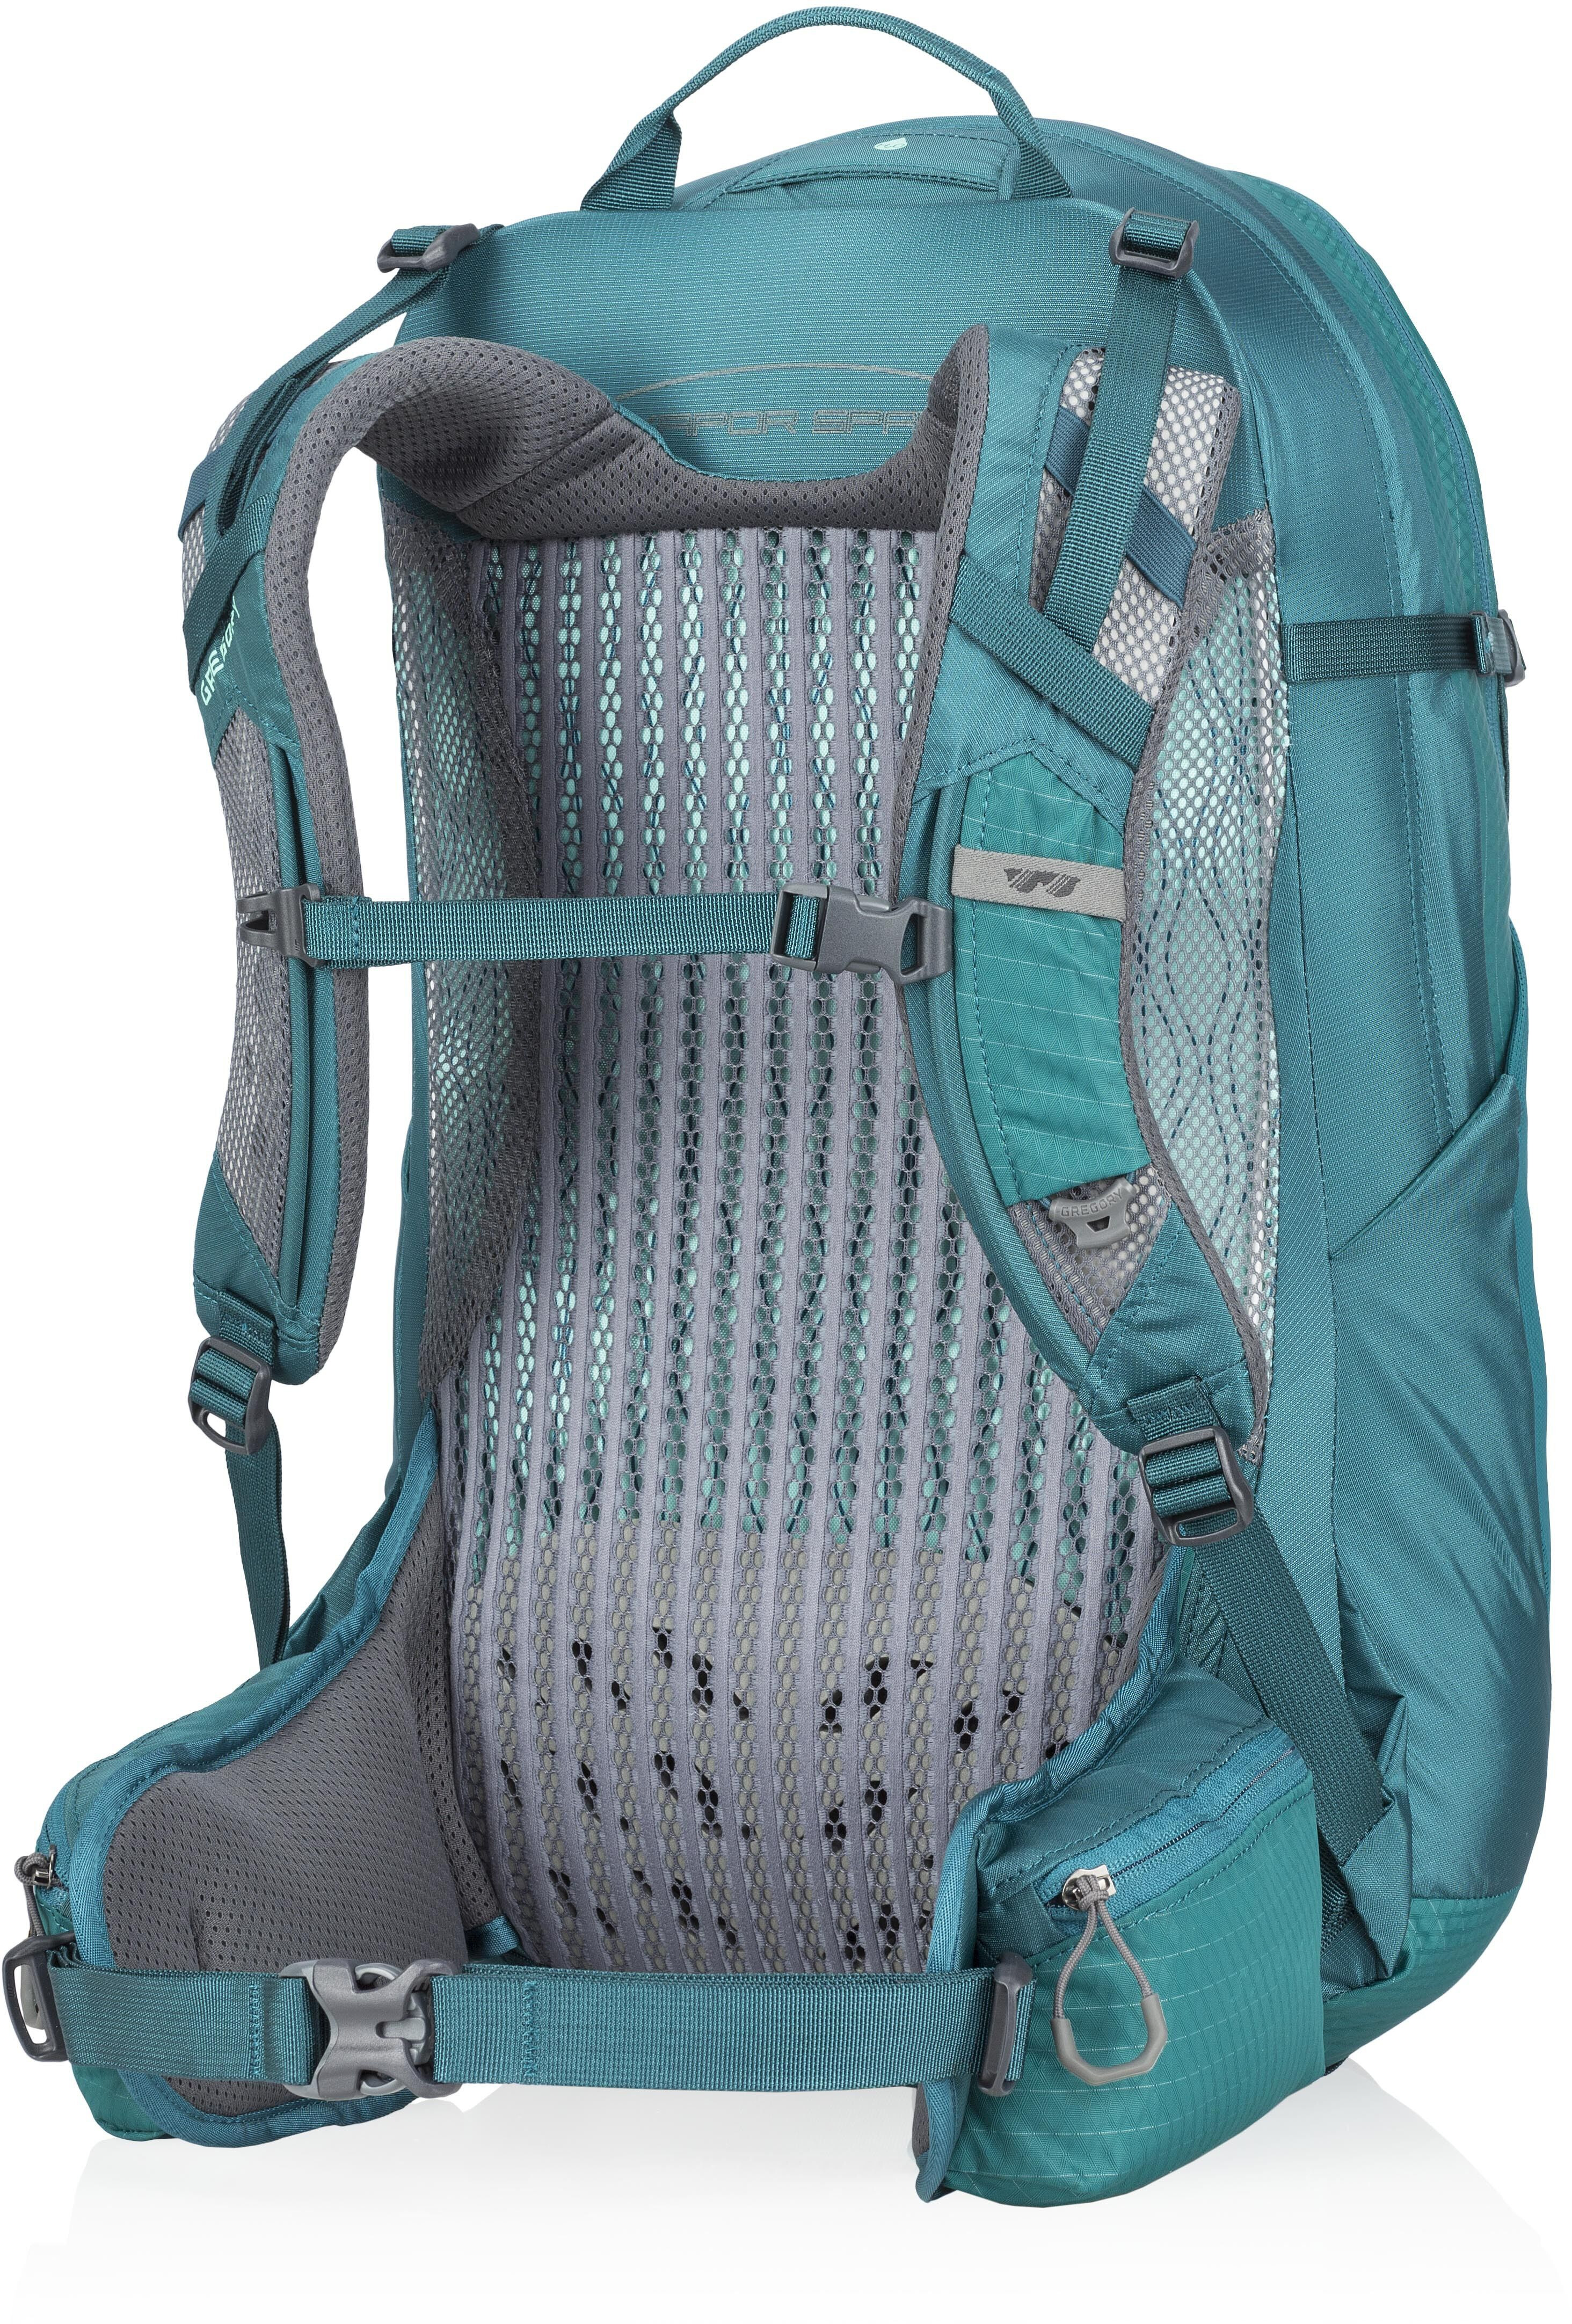 605d2e7879c10 Gregory Sula 28 Backpack Women mineral green